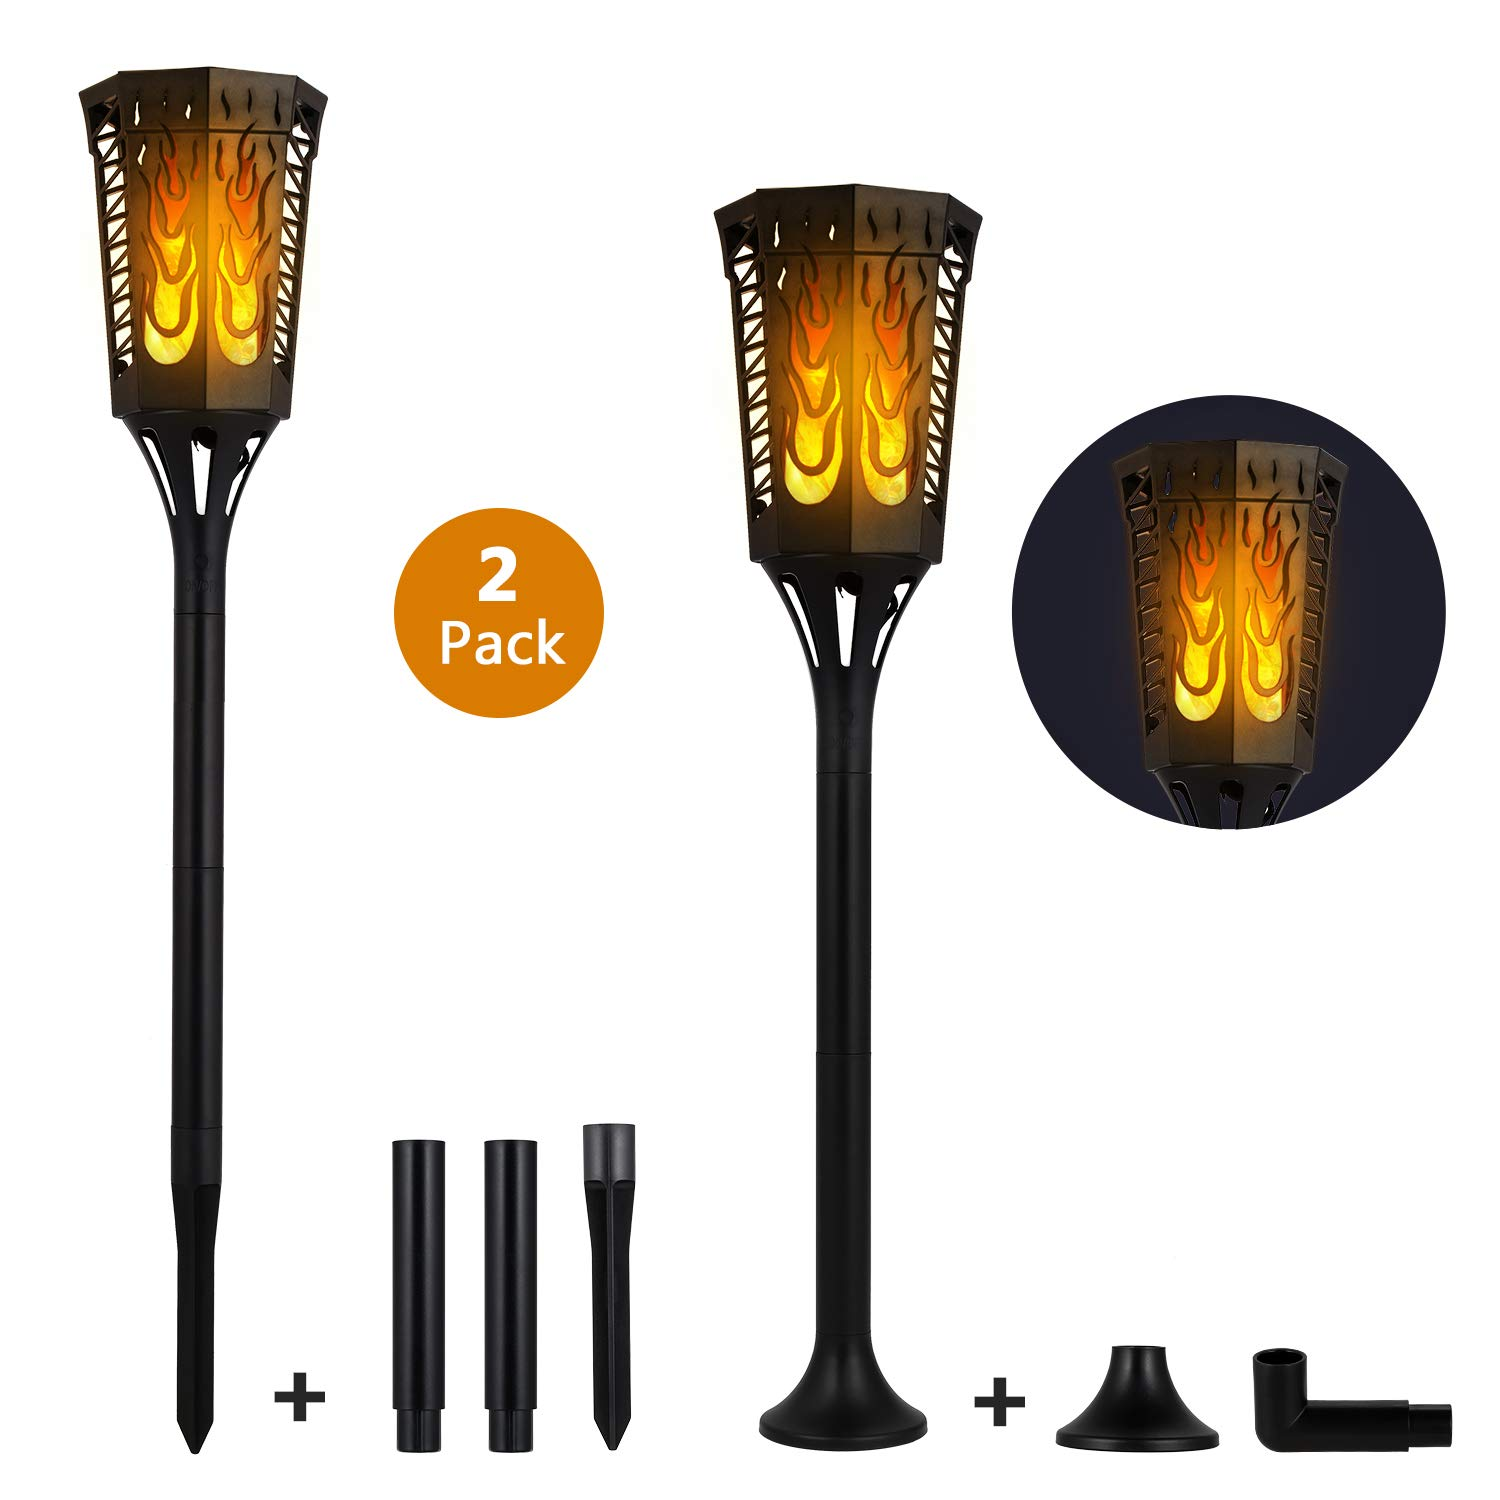 Sailnovo Solar Torch Light Flickering Flame Outdoor Dancing Flickering Flame Tiki Lights 4 Usage Modes 96 LED IP65 Waterproof Landscape Lighting Dusk to Dawn Auto On/Off Backyard Decoration 2 Pack